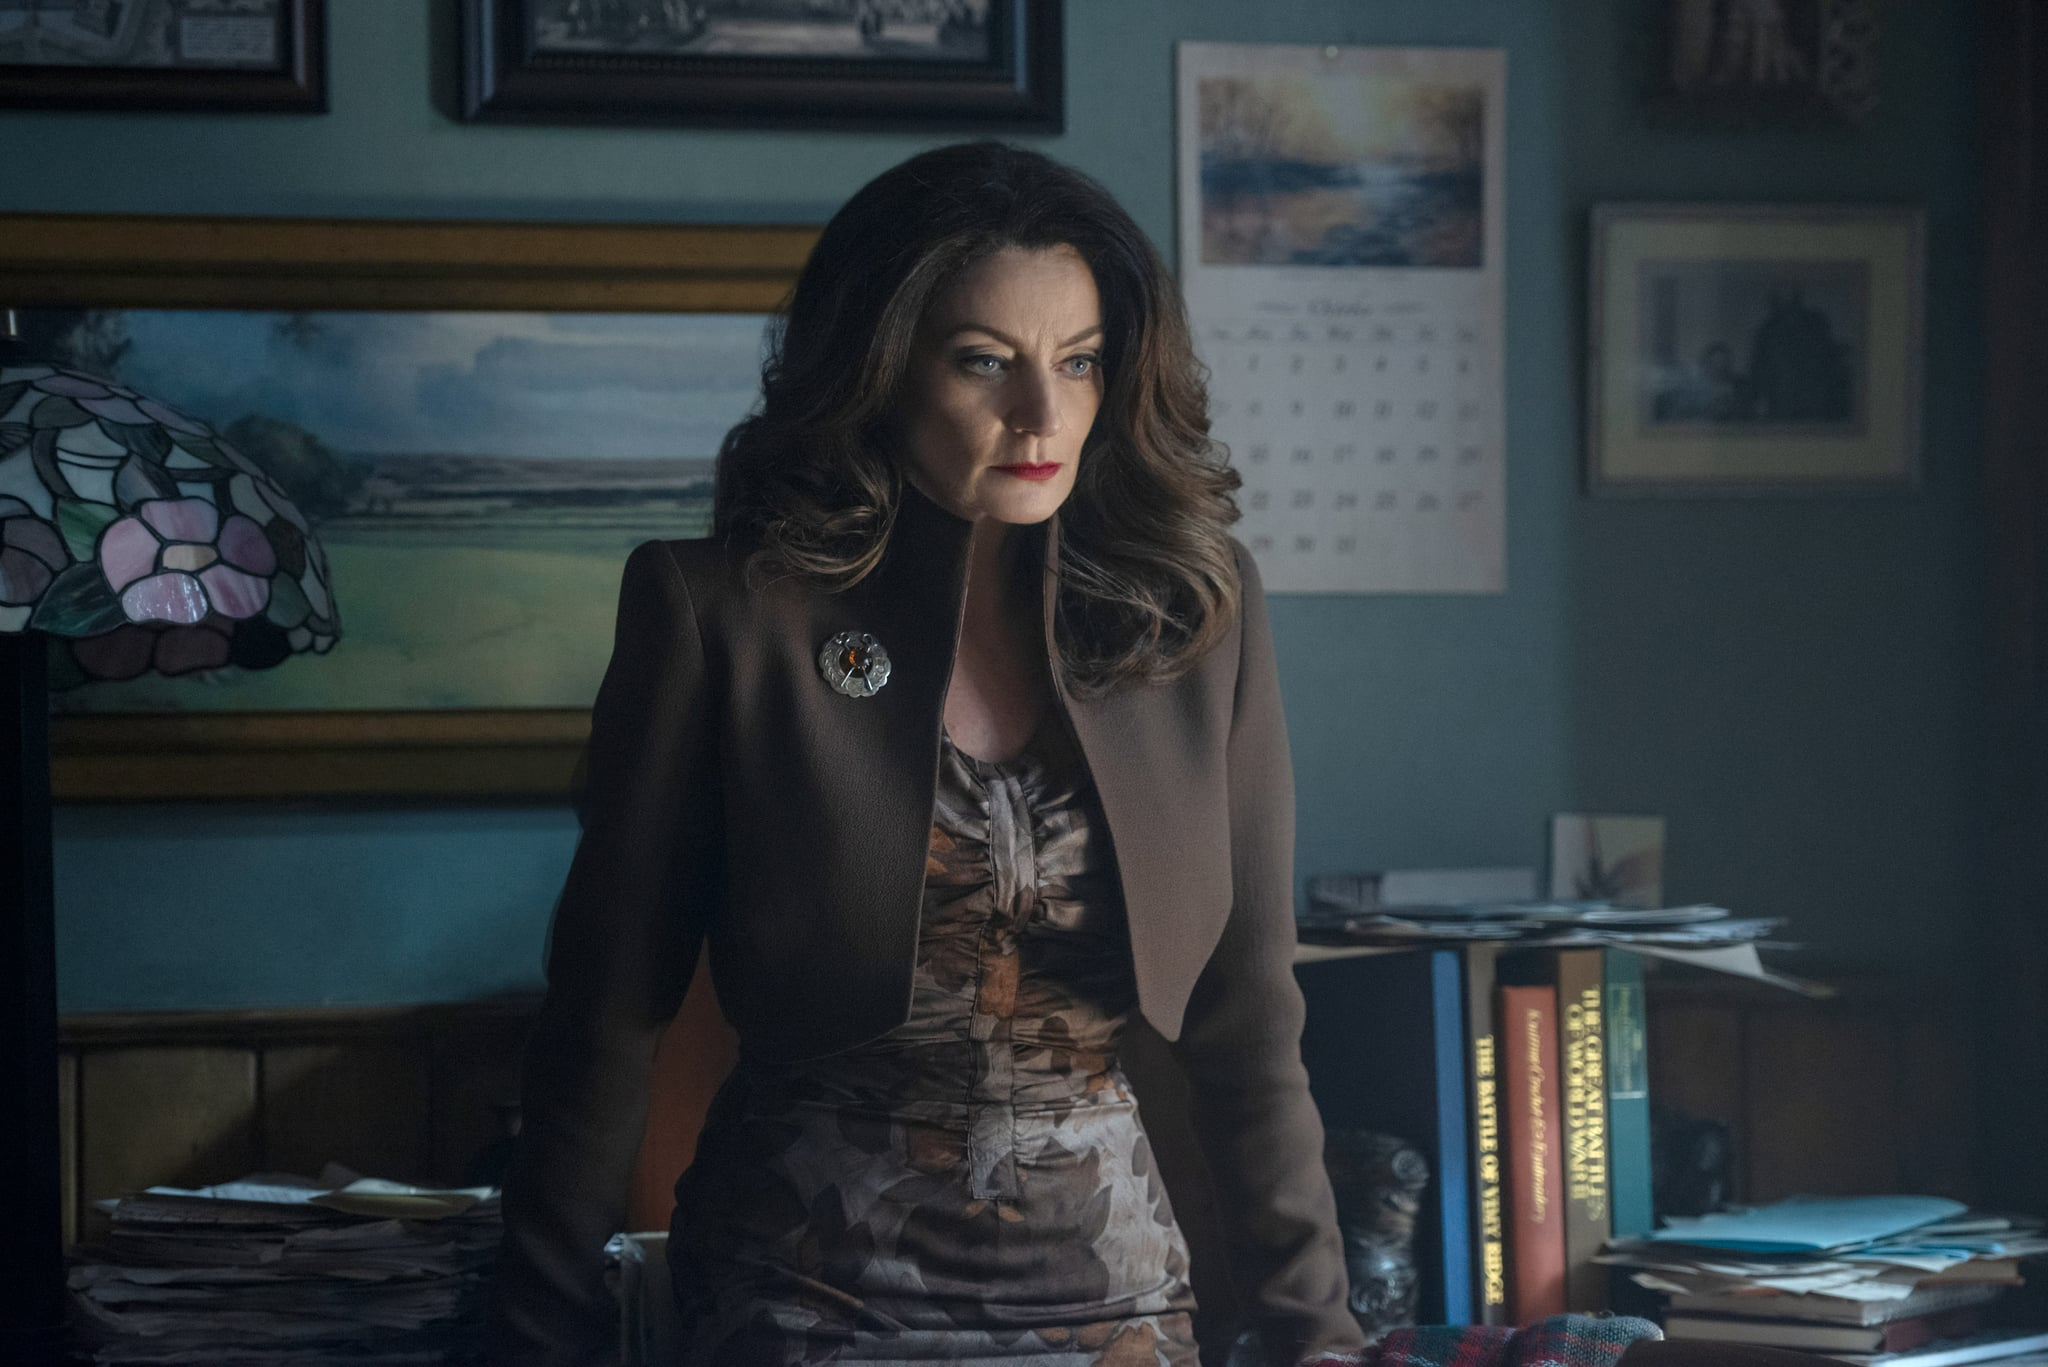 CHILLING ADVENTURES OF SABRINA, Michelle Gomez in 'Chapter One: October Country', (Season 1, Episode 101, aired October 26, 2018), ph: Diya Pera /  Netflix / courtesy Everett Collection